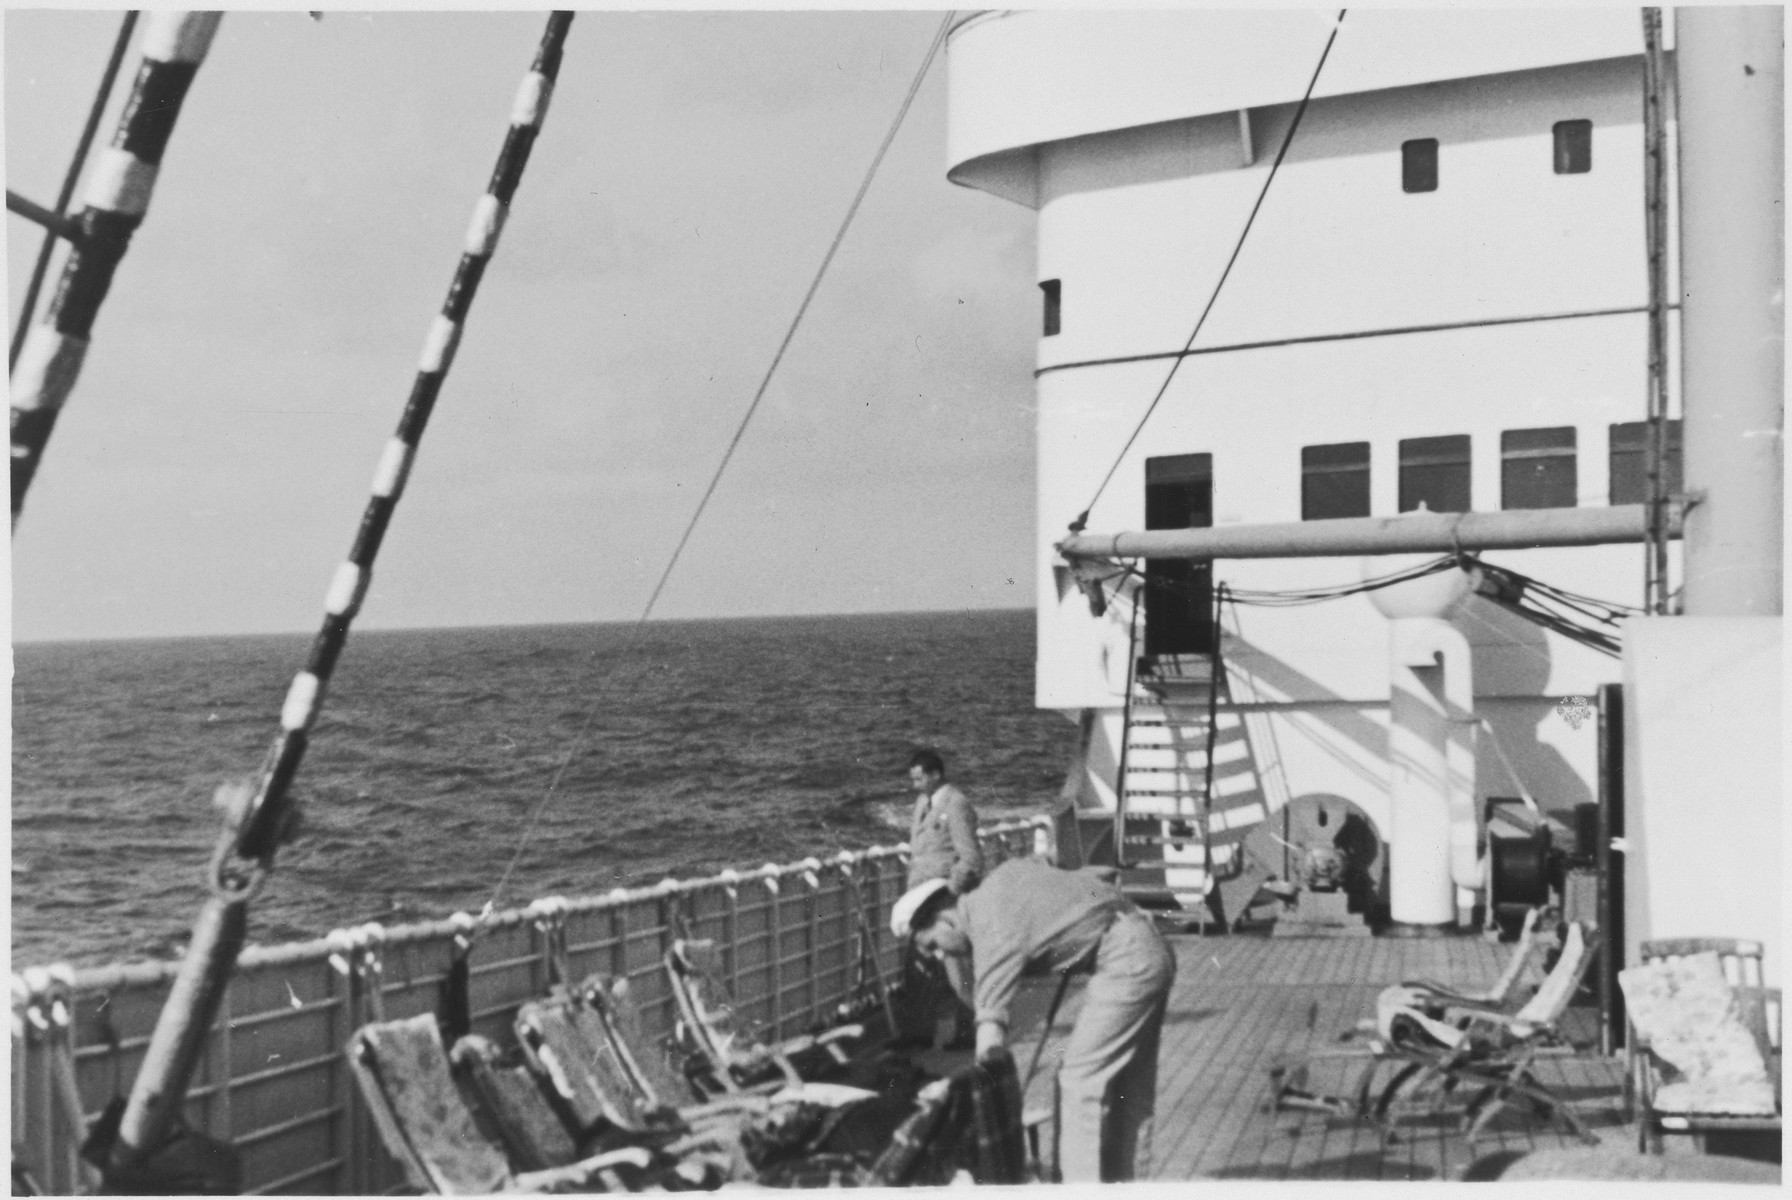 View of the bridge of the MS St. Louis.  In the foreground, a crewman cleans the deck area while a passenger standing at the railing looks out over the sea.